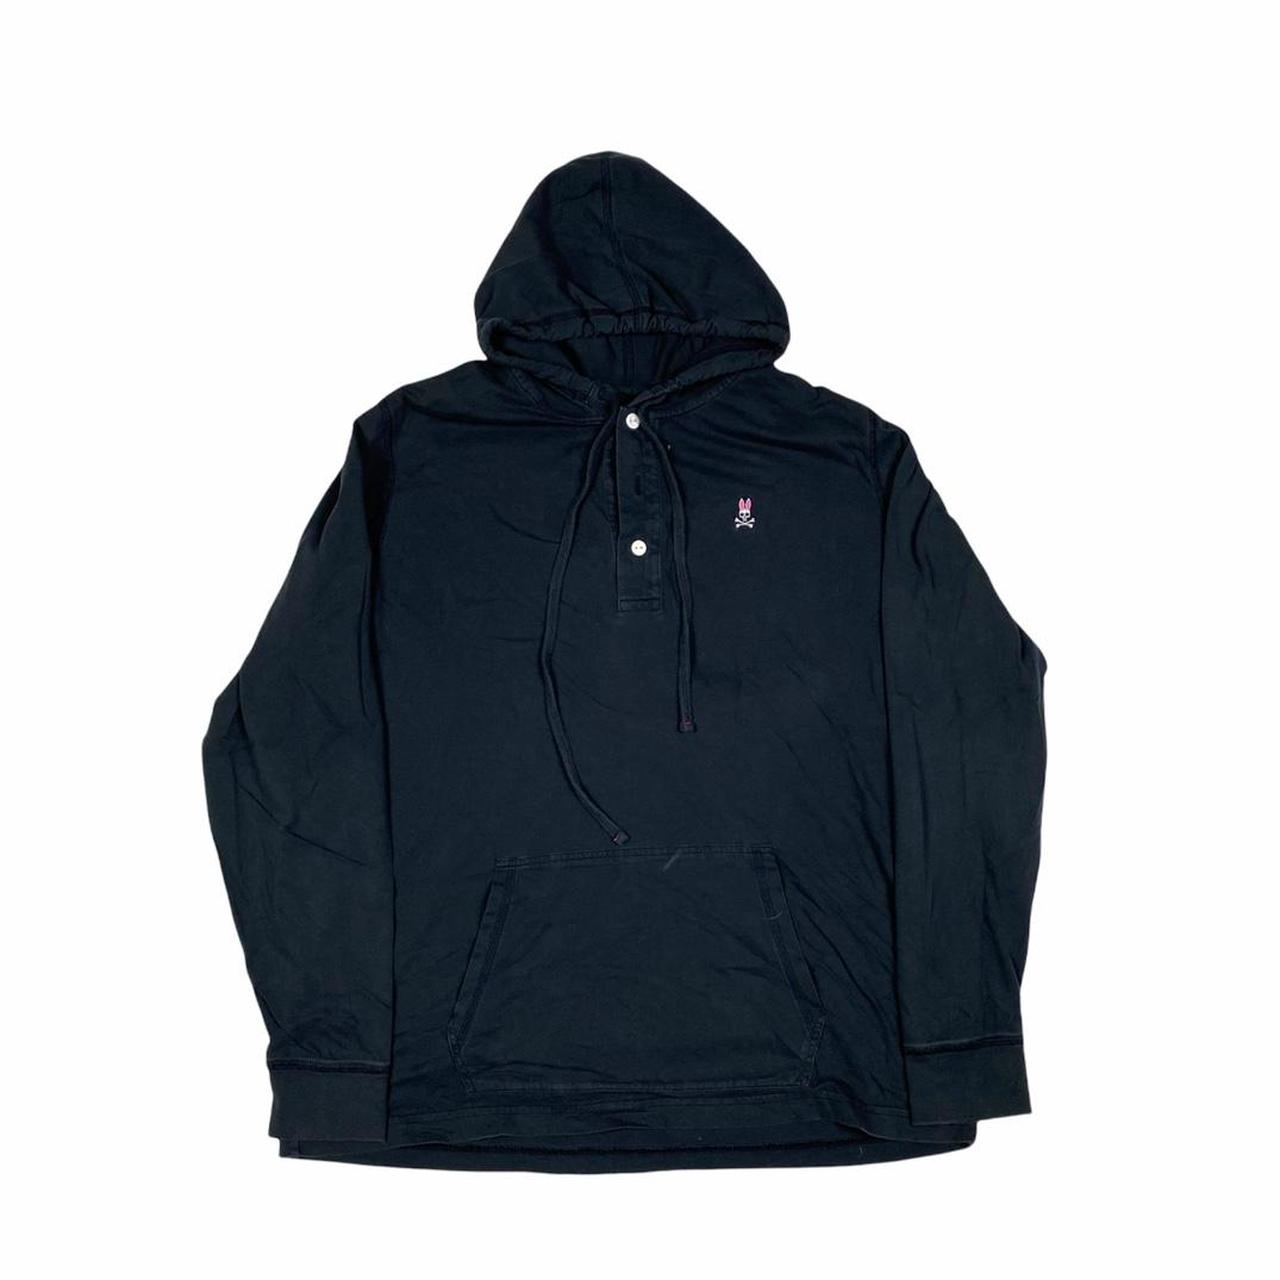 Product Image 1 - psycho bunny hoodie  size large